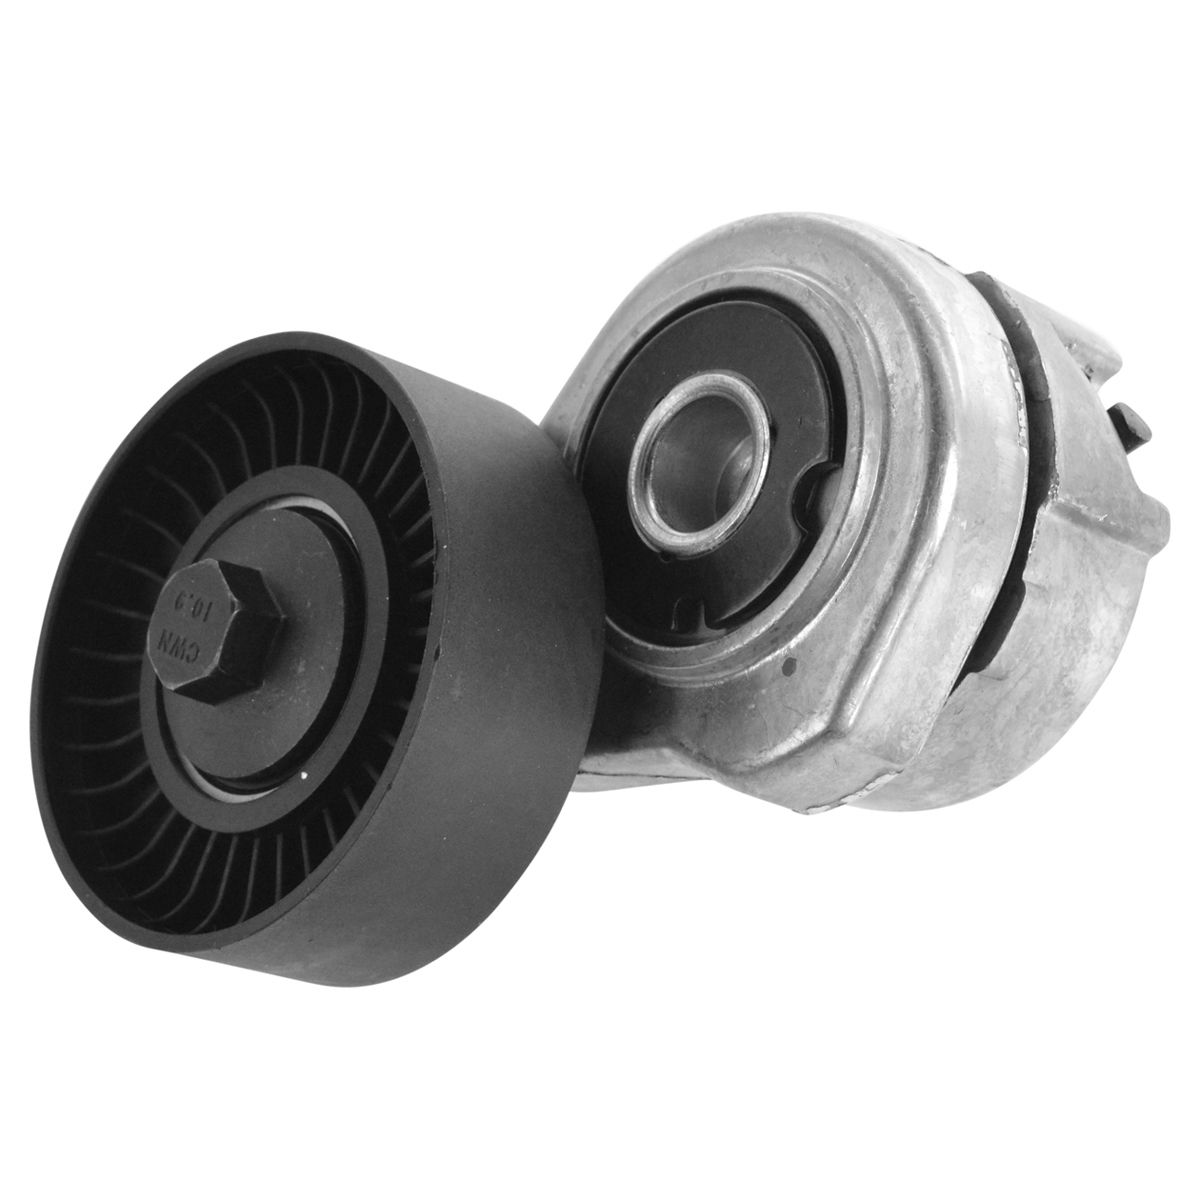 hight resolution of serpentine belt tensioner for ford taurus ranger mazda mercury sable v6 3 0l